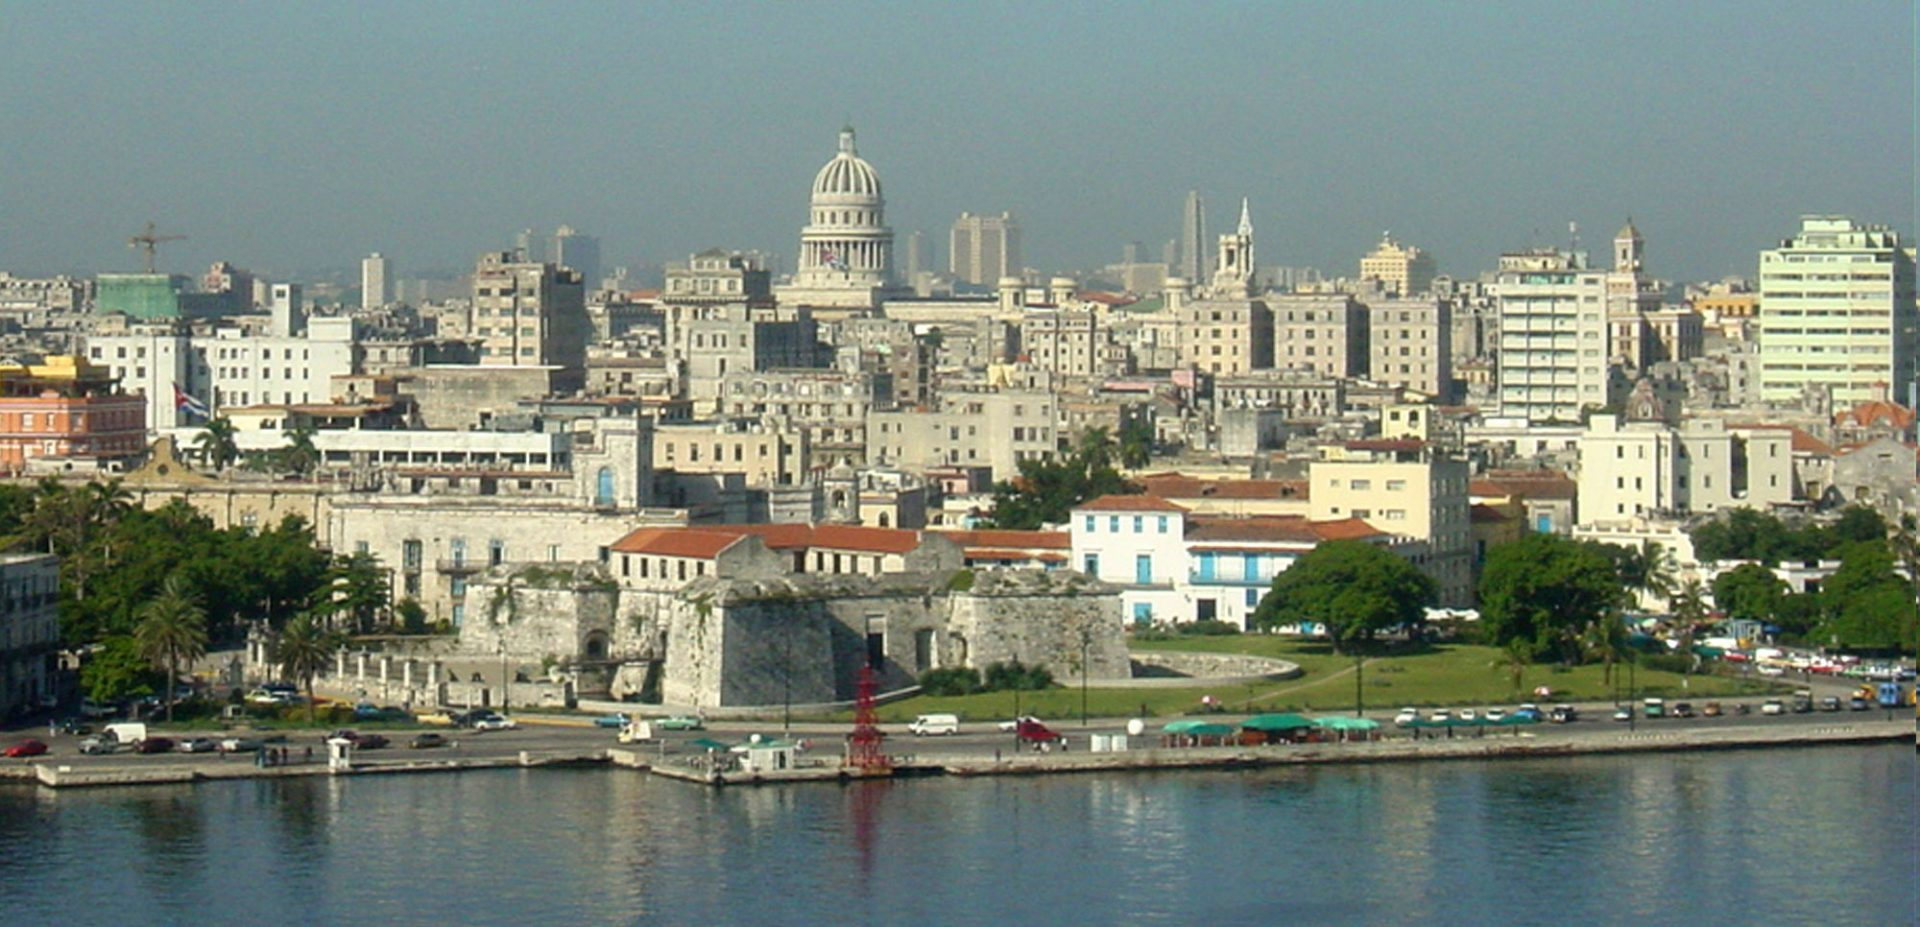 Charting a New Course for U.S. Business in Cuba